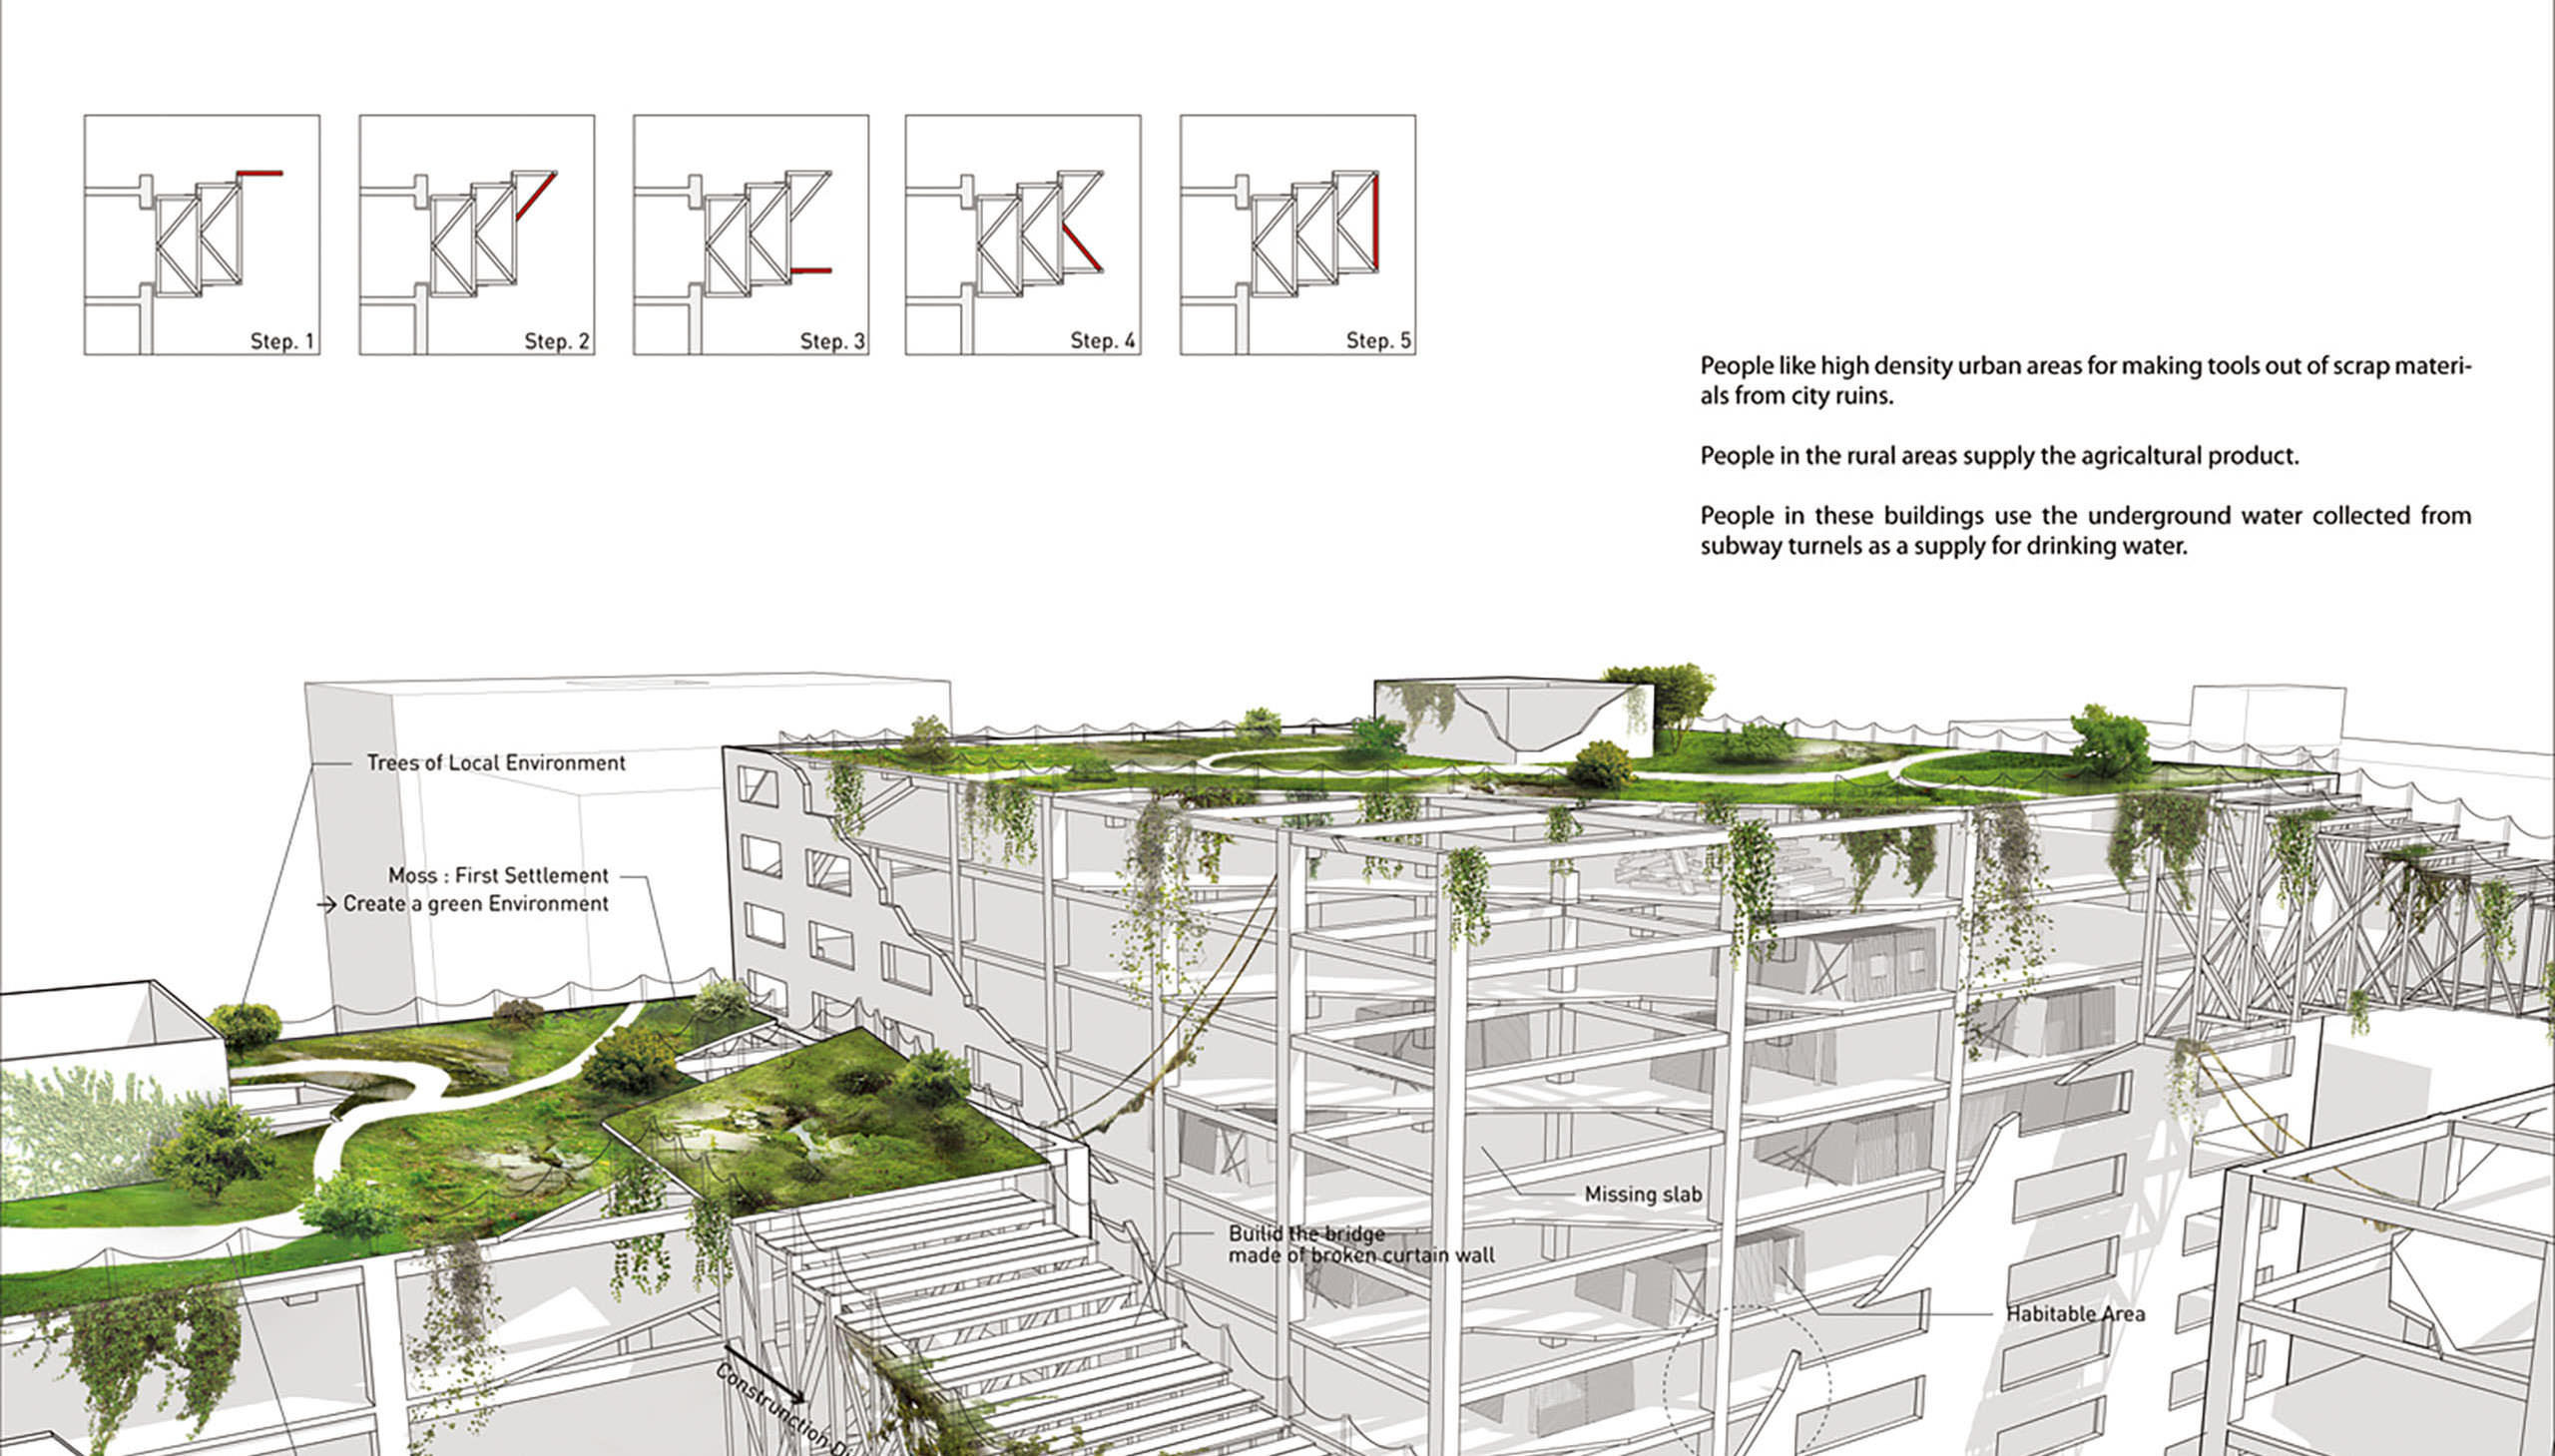 The way in which manmade structures undergo revegetation after cities have crumbled is also examined from the perspective of the vegetation itself. The video depicted a future park reminiscent of a type of hanging garden, floating amid the actual urban space, with the rooftops of buildings linked by suspended bridges.